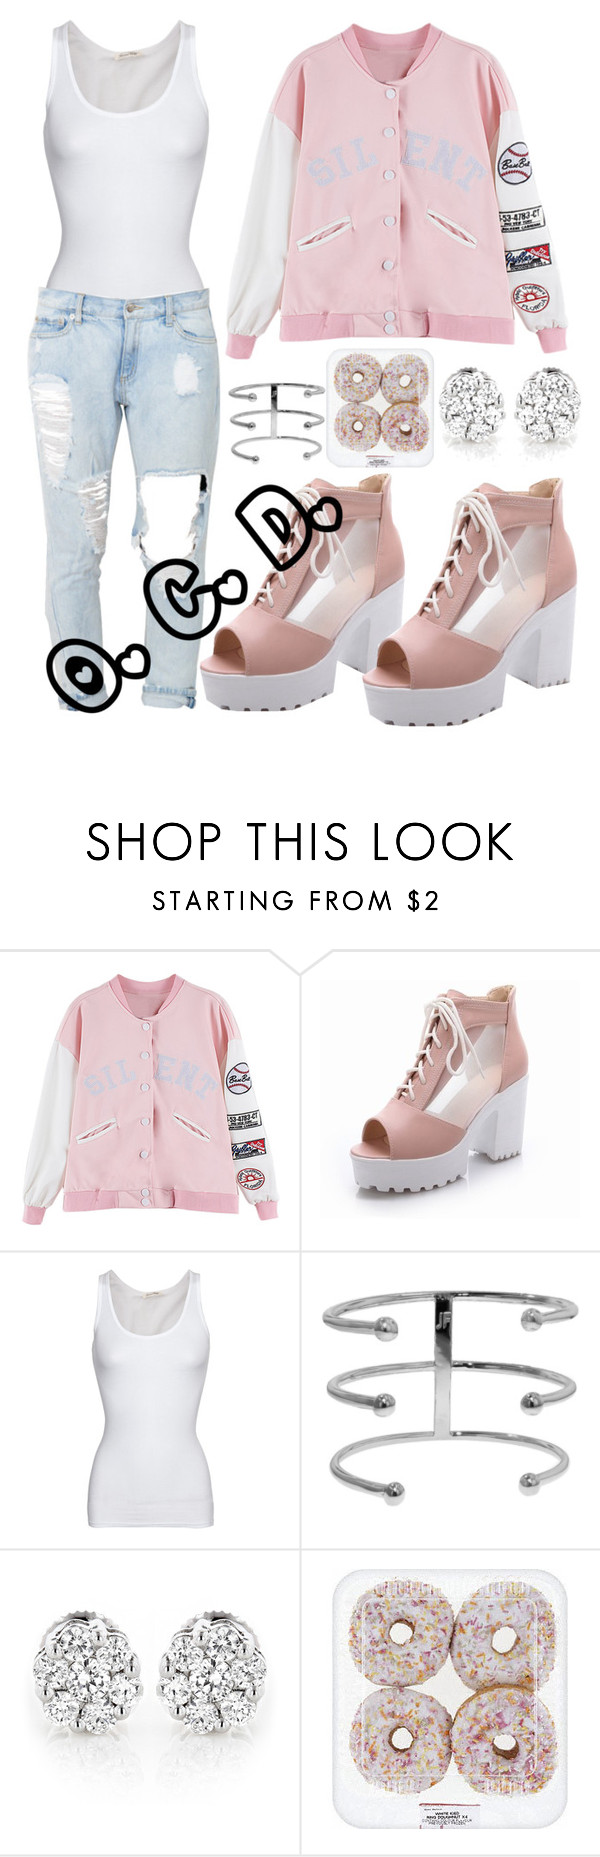 """Silent Pink."" by oreocaker ❤ liked on Polyvore featuring American Vintage, Jennifer Fisher, contestentry, laceupsandals and PVStyleInsiderContest"